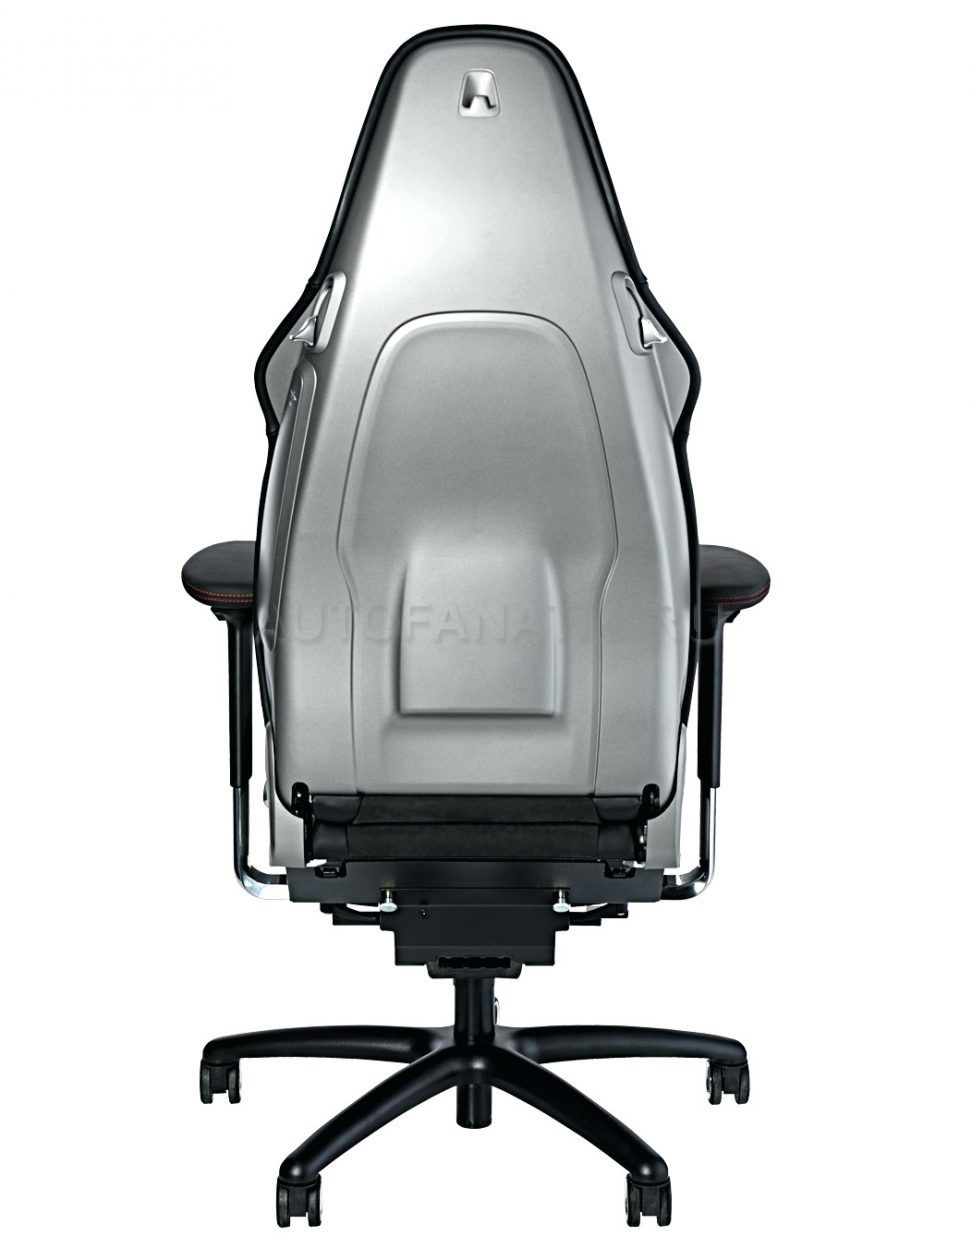 20 Porsche Office Chair Ebay Home Furniture Collections Check More At Http